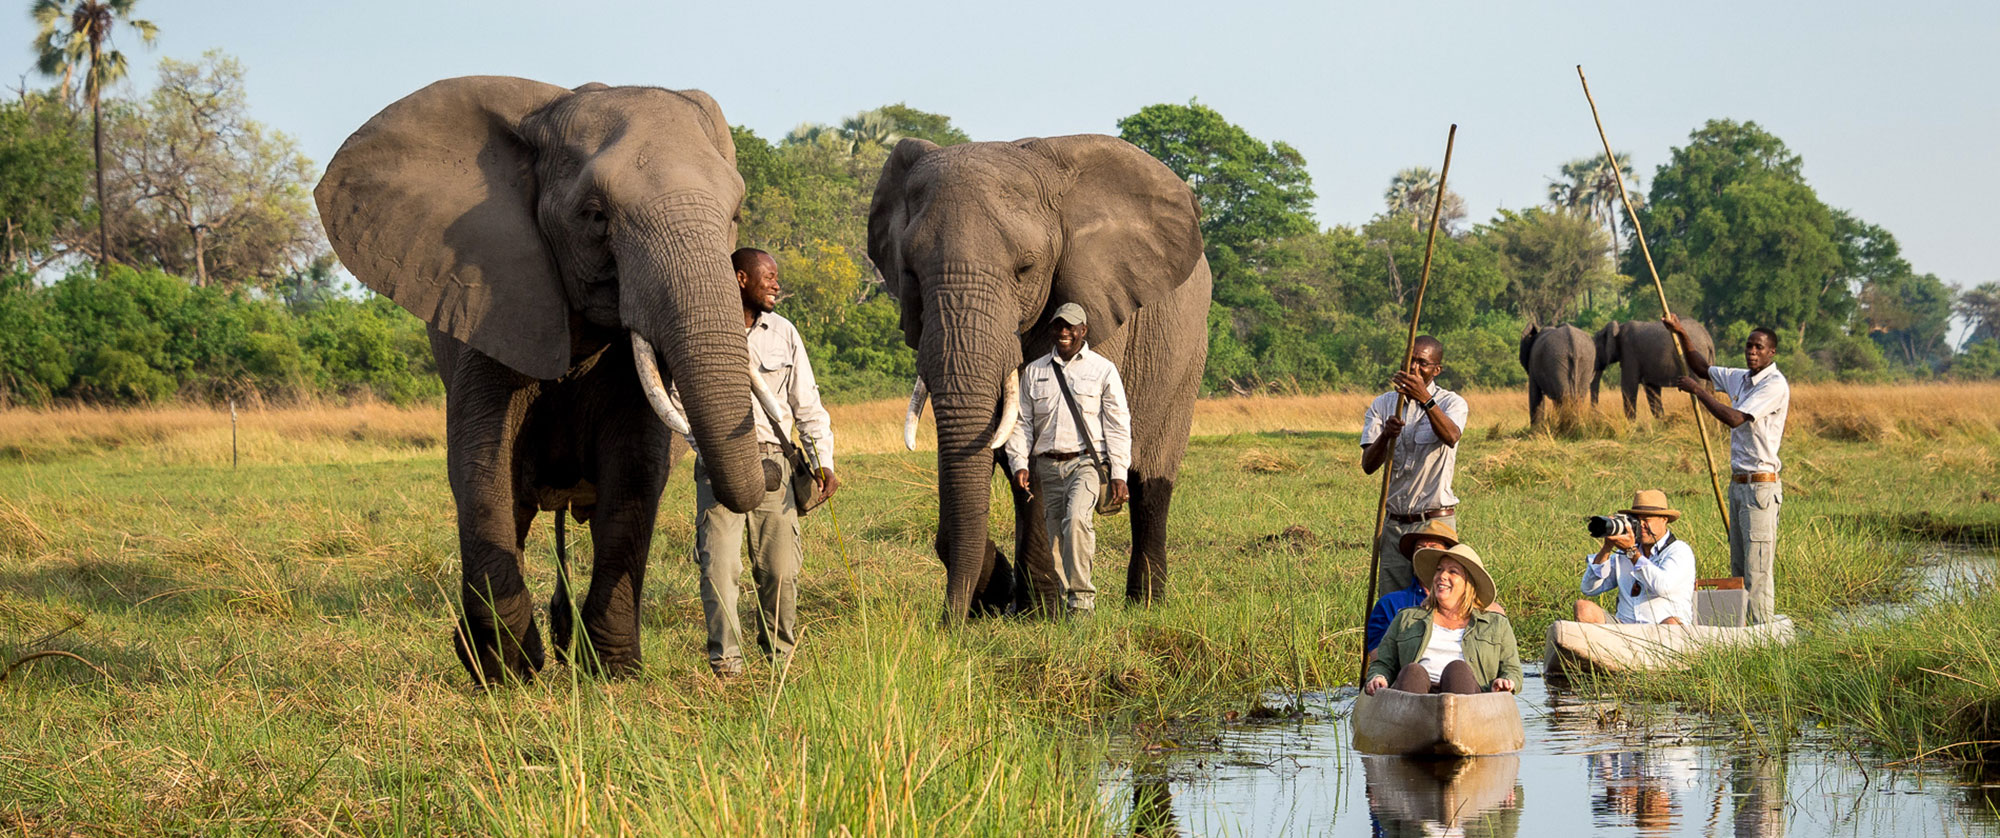 Okavango Delta Packages - Luxury Safari - Mokoro Safari and Walking with Elephants at Abu Camp